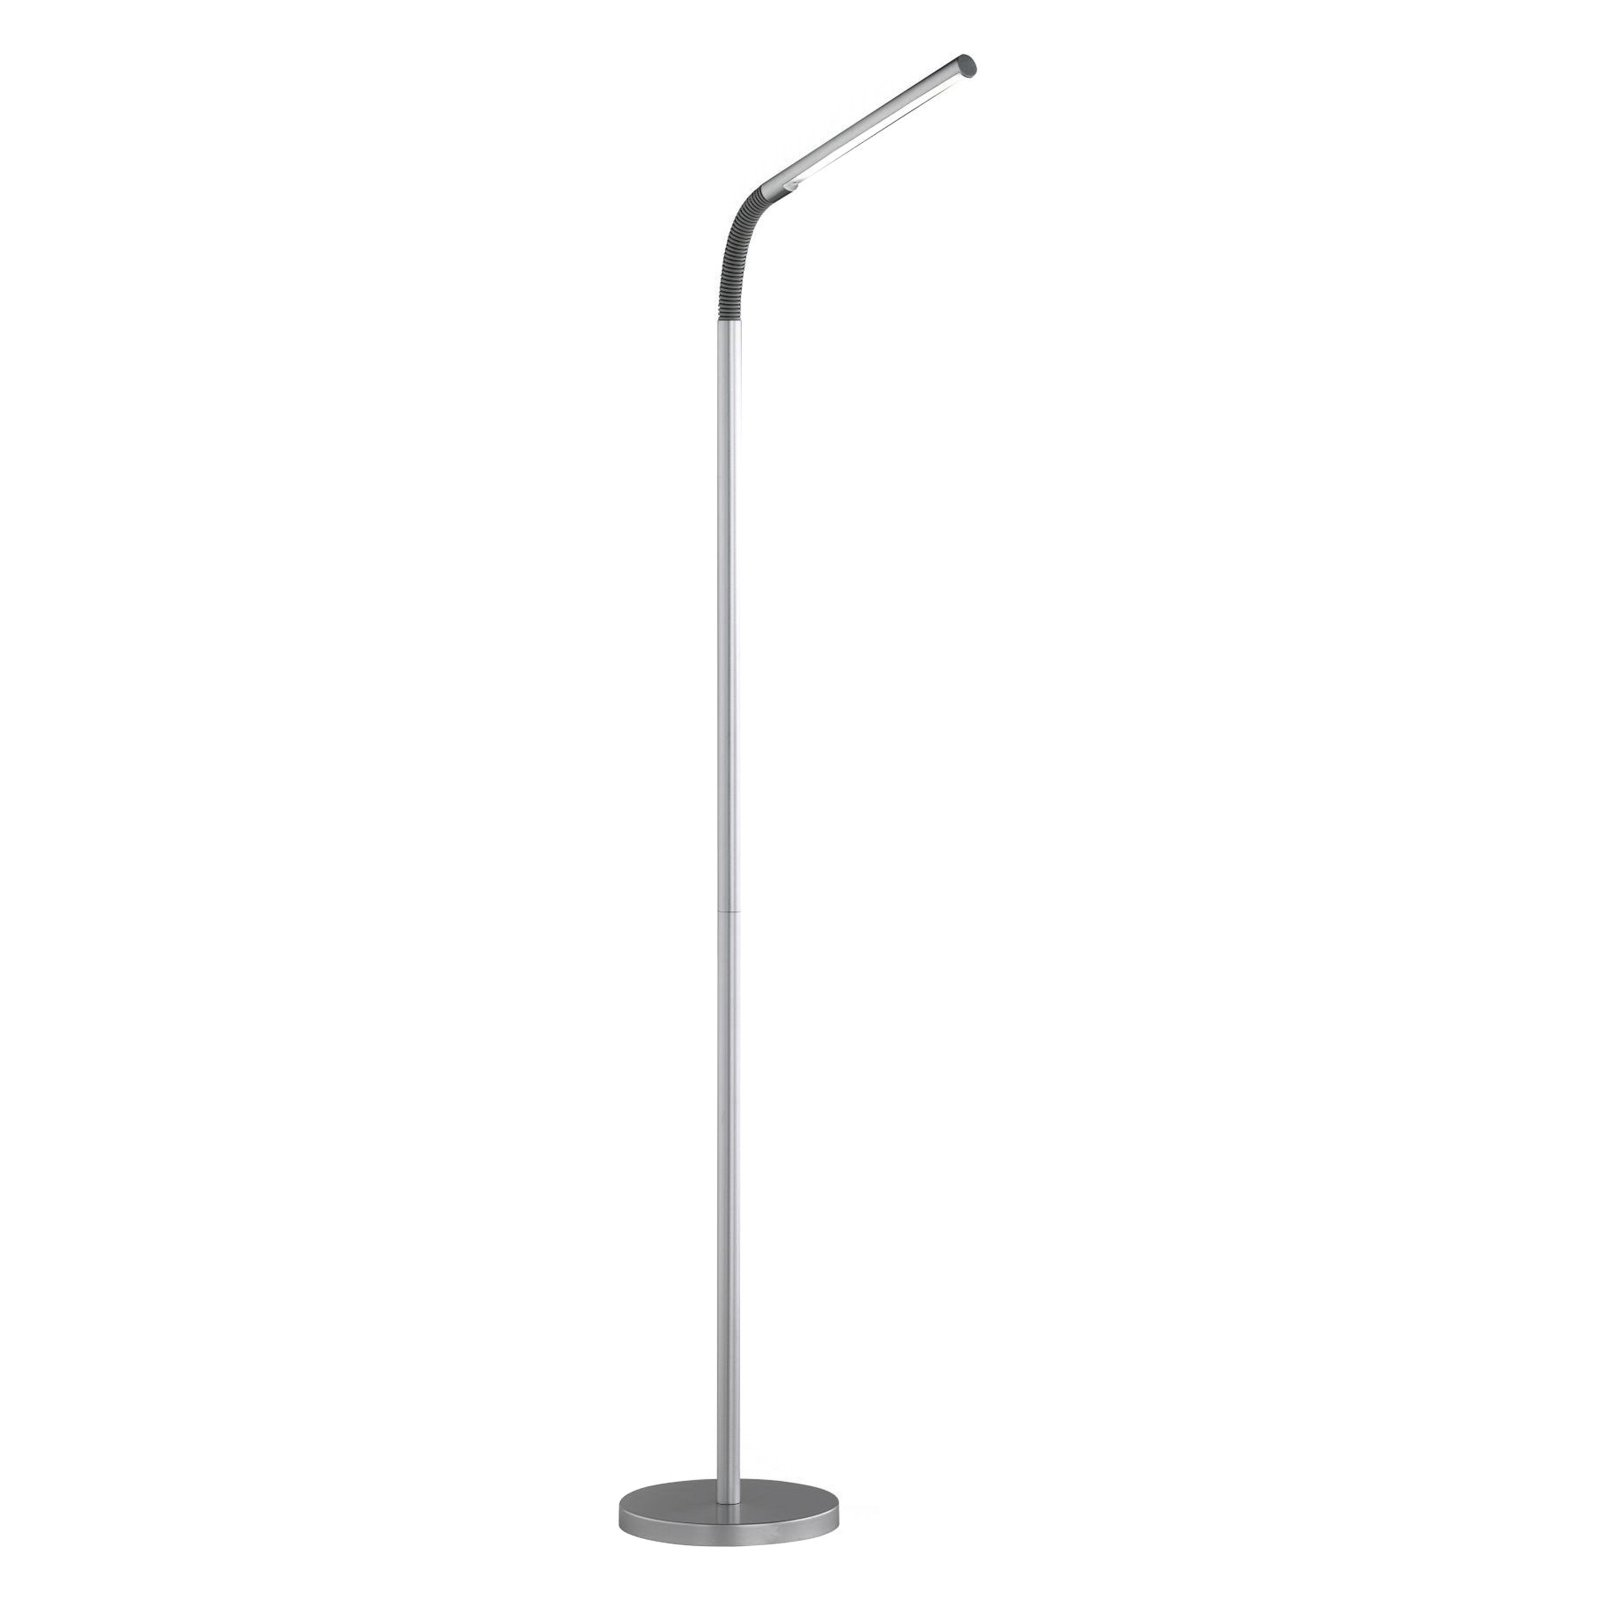 "LED Floor Lamp, Silver, Energy Saving, Light Source for reading or Computer use. Product Size: 7.87"" x 60.24""... by Generic"